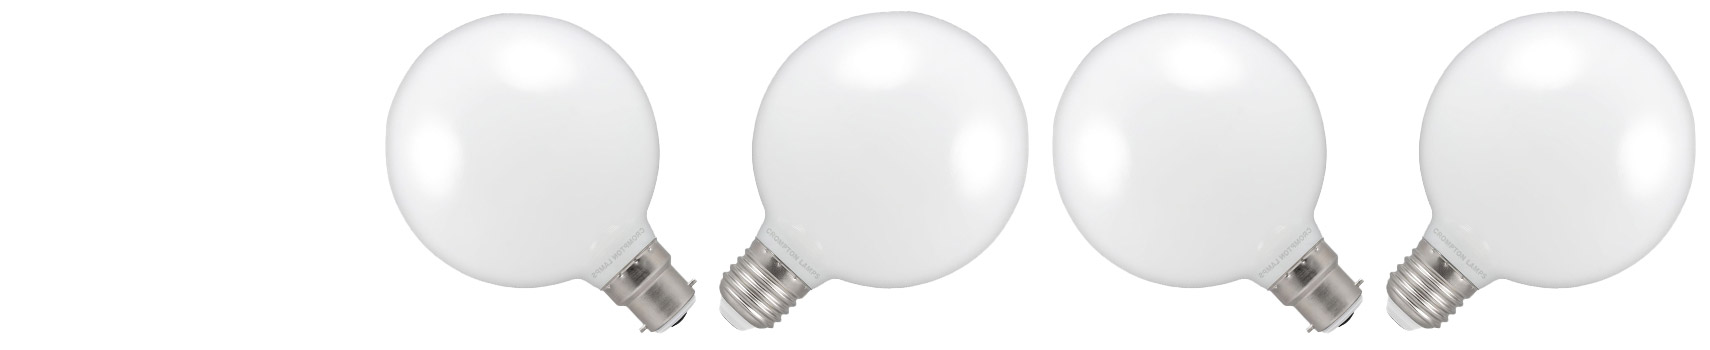 Round Incandescent Bulbs